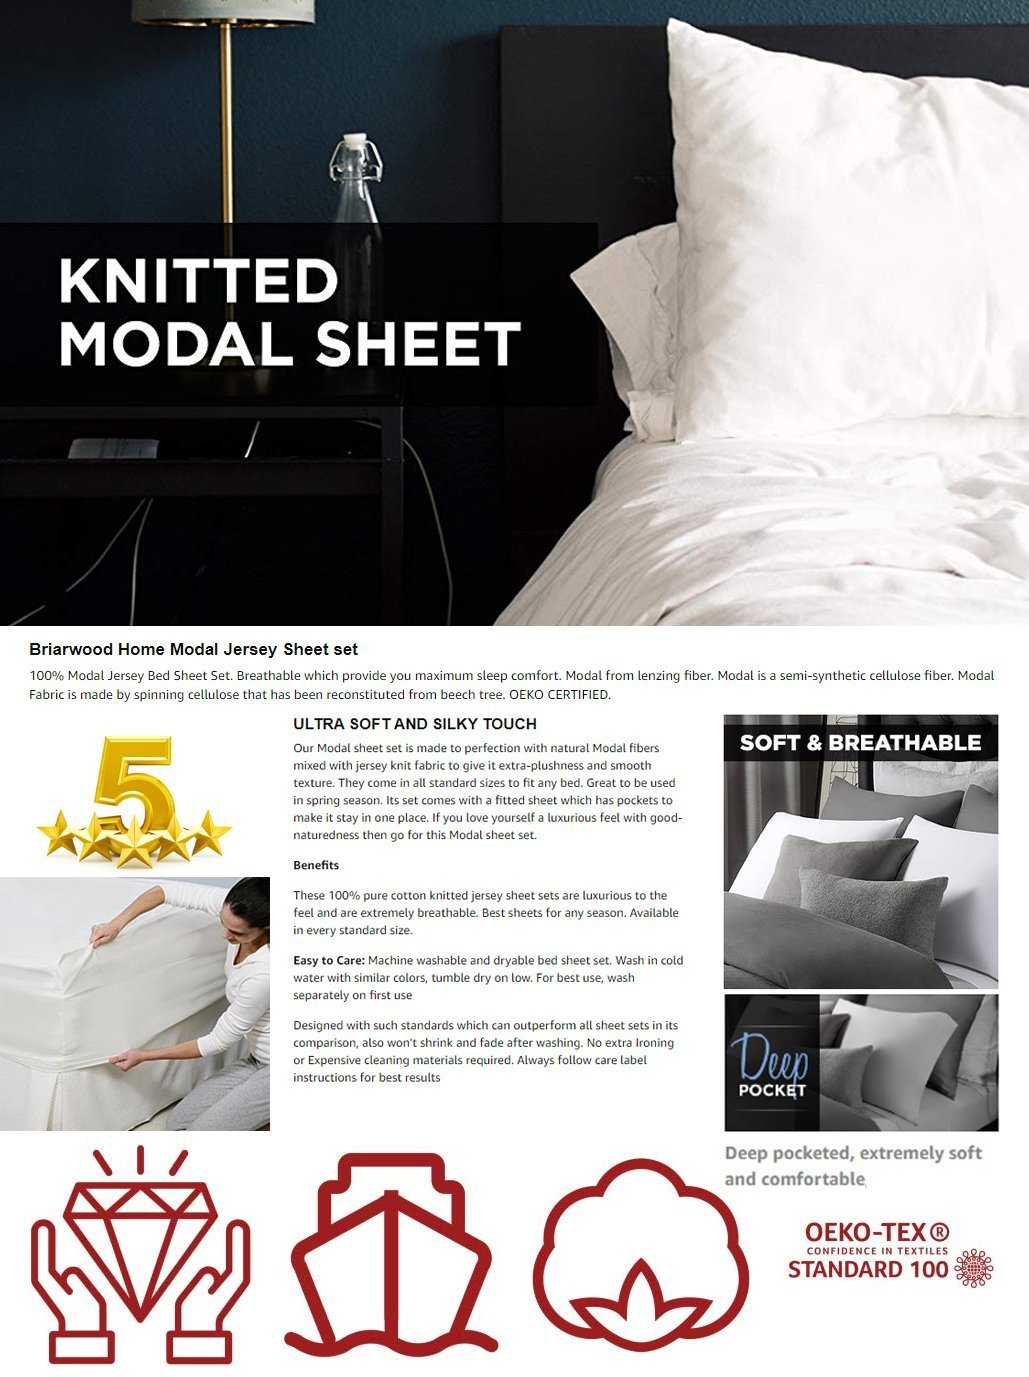 Briarwood Home Modal Jersey Sheet set